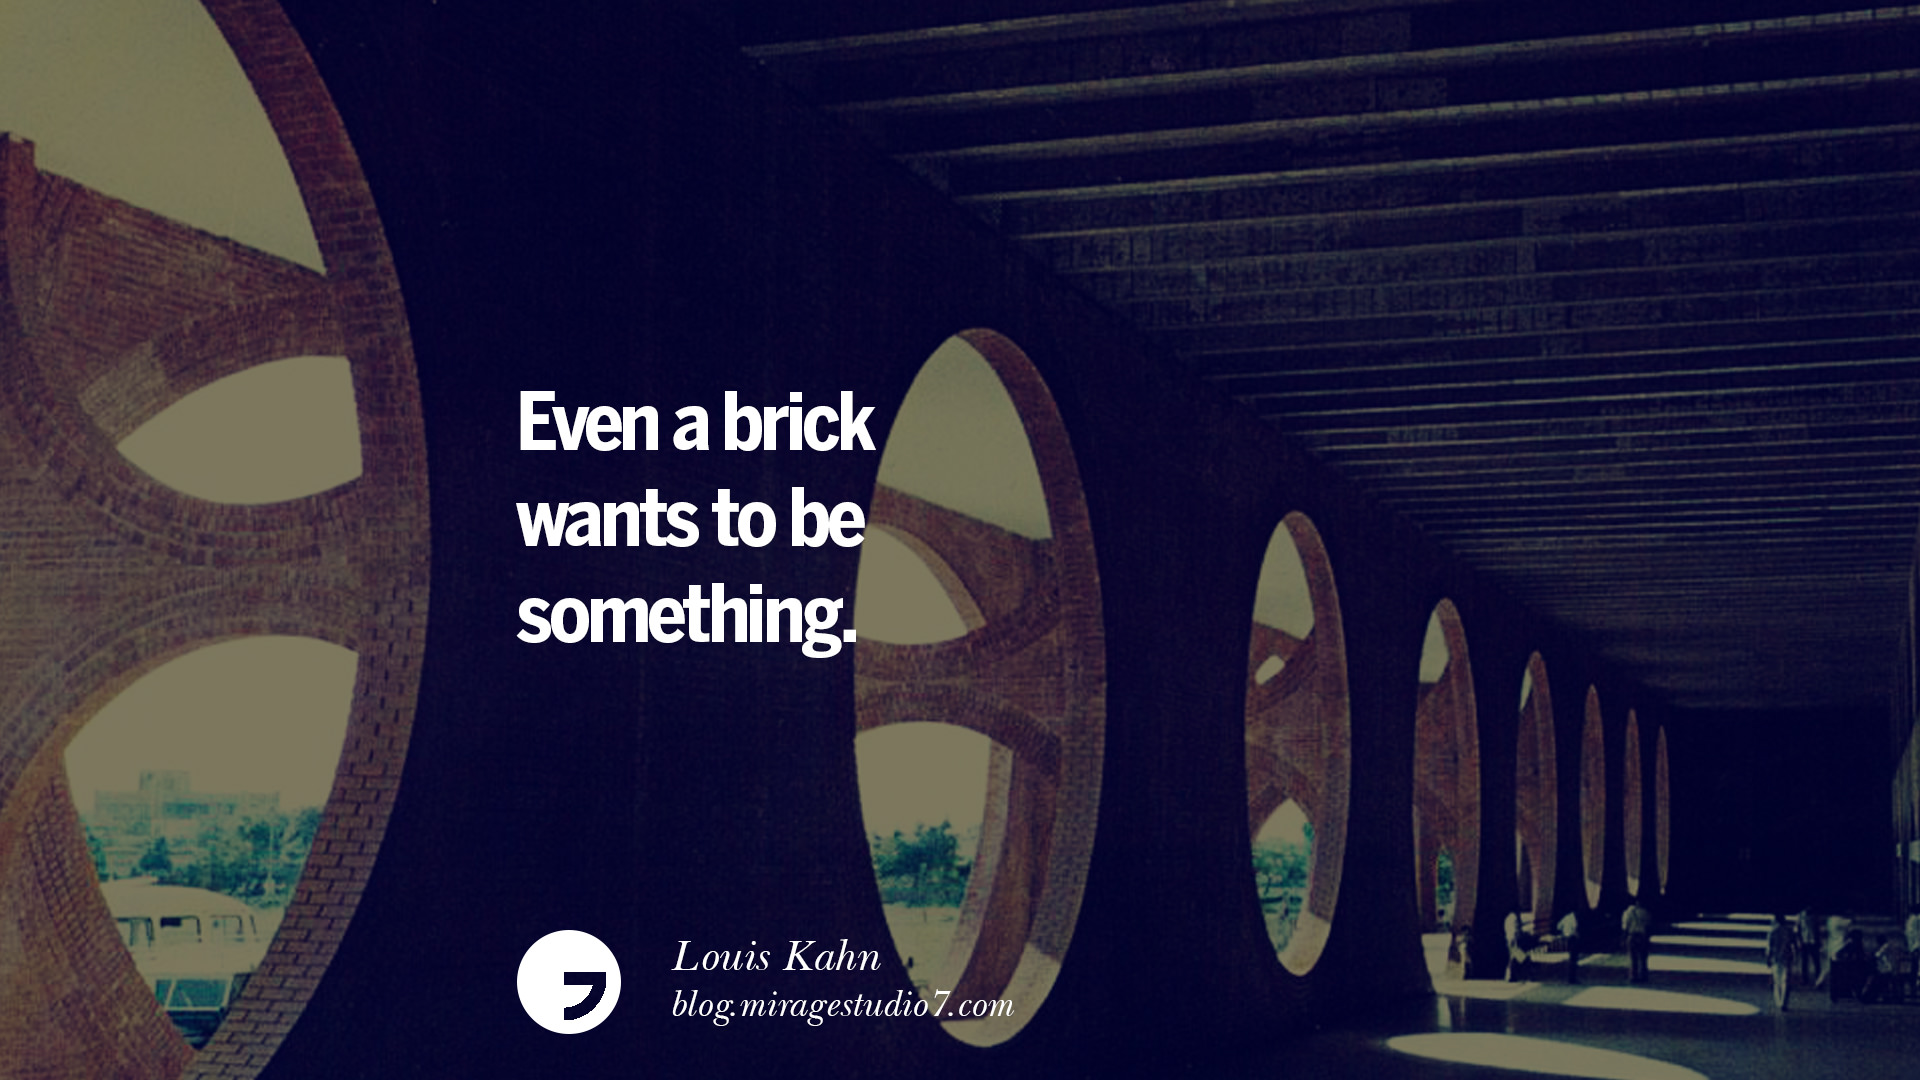 28 inspirational architecture quotes by famous architects for Interior designs slogans